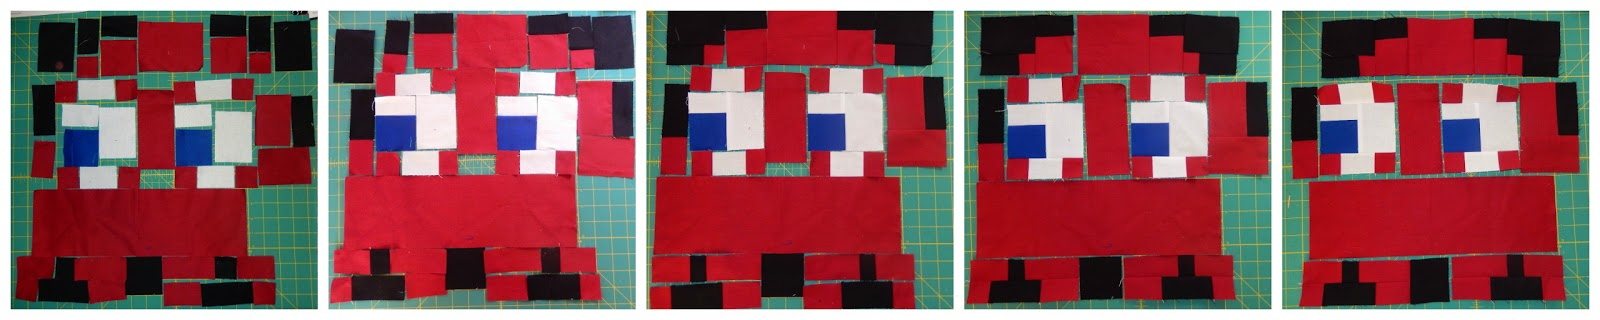 Blinky Pac Man Ghost Quilt Block by Afton Warrick @ Quilting Mod